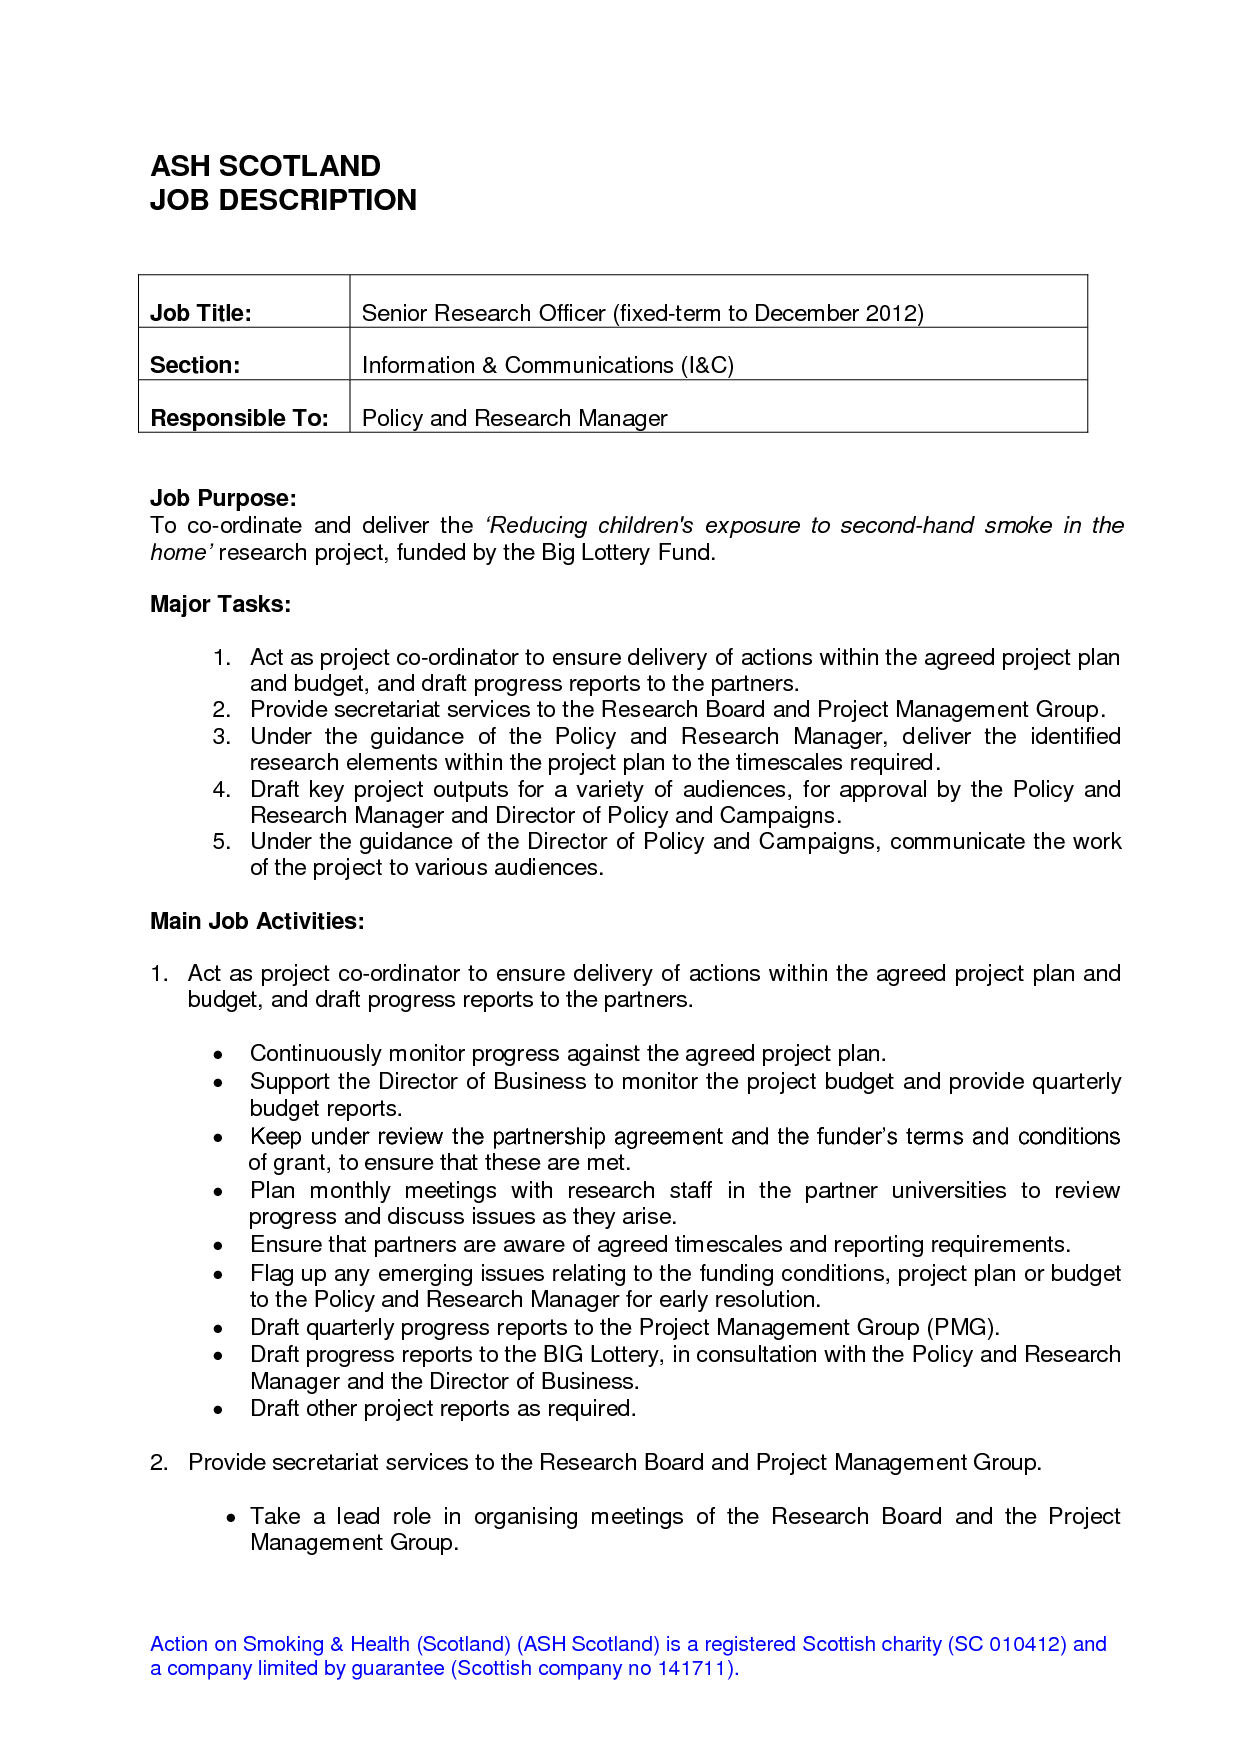 Cashier Duties Resume Job Description  Job Description Forms  Pinterest  Job Description